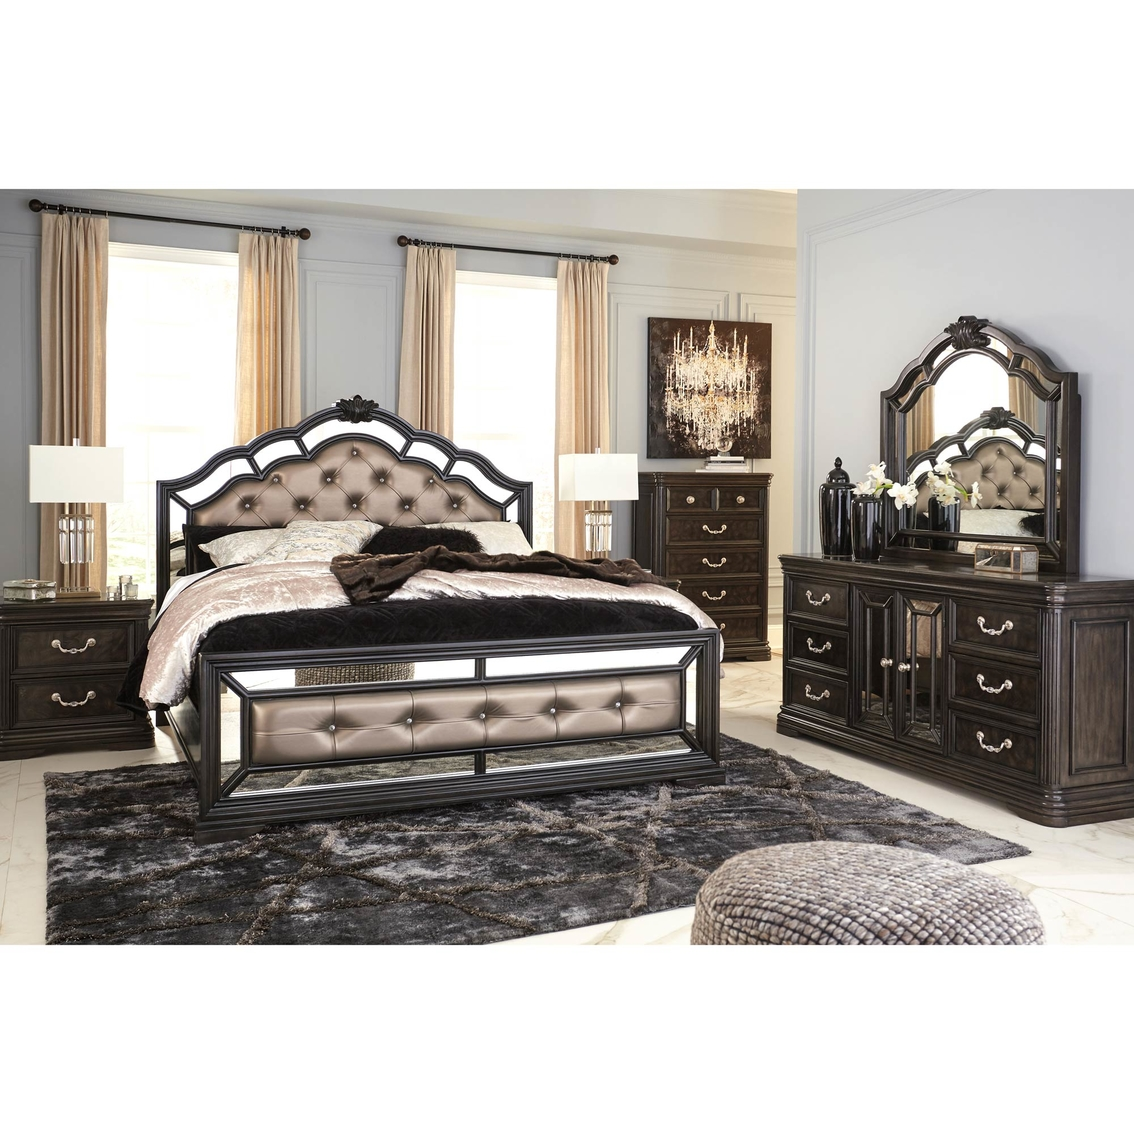 Signature Design By Ashley Quinshire 5 Pc. Bedroom Set